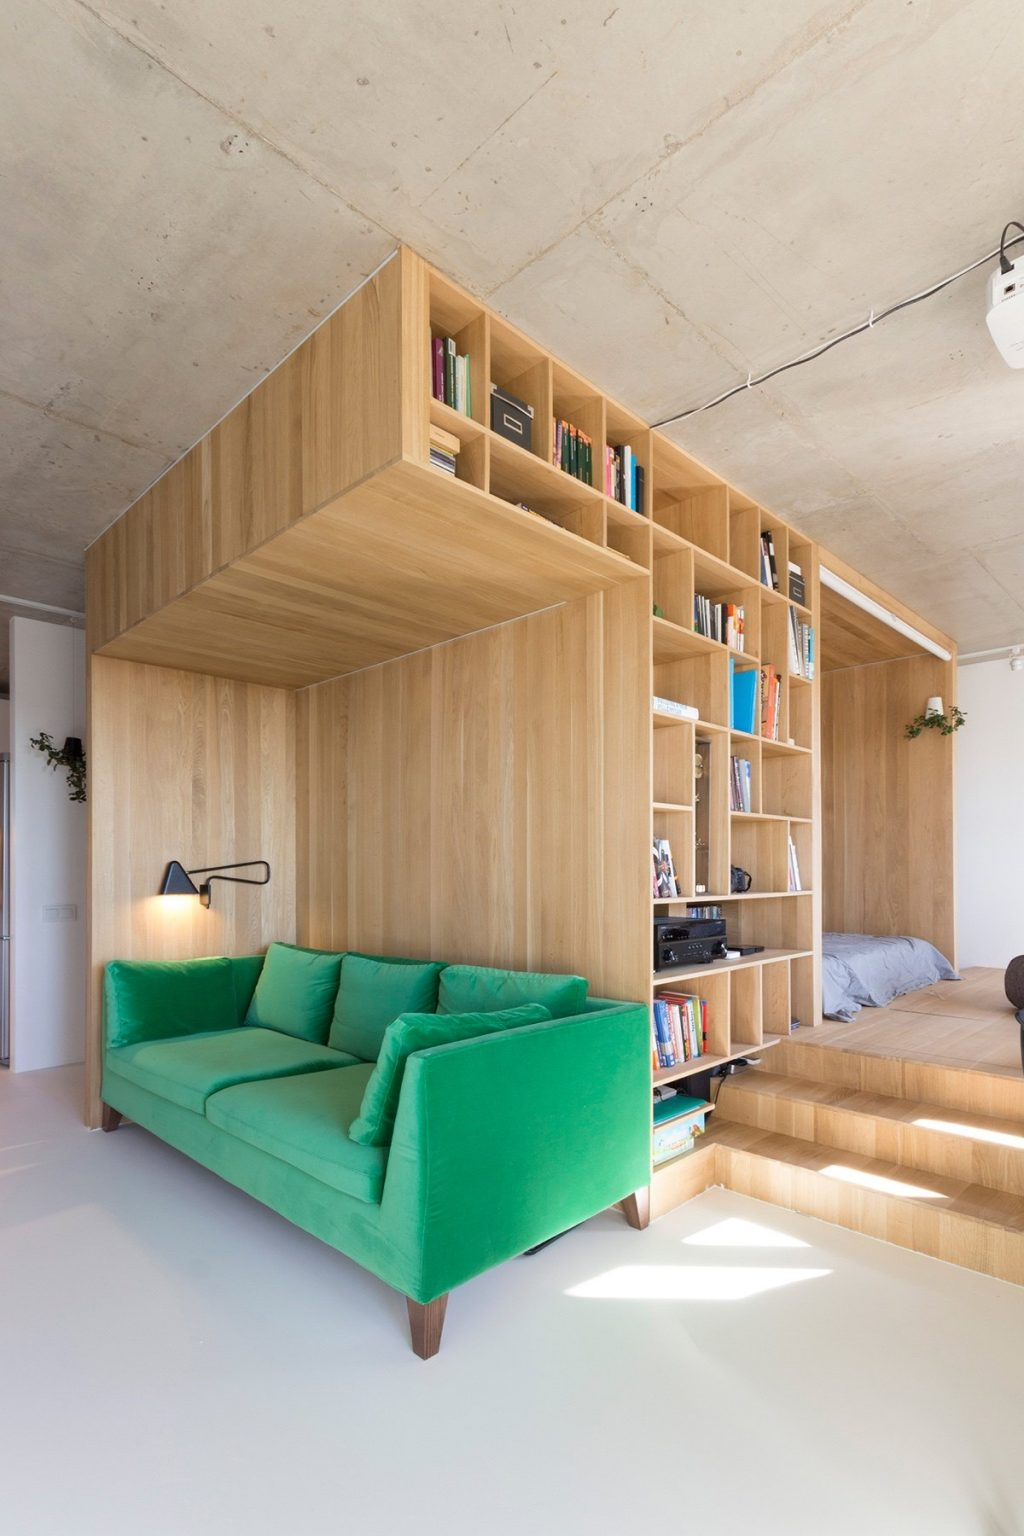 1.Feature-leaf-green-velvet-couch-under-50sqm-living-room-backed-by-bookcase